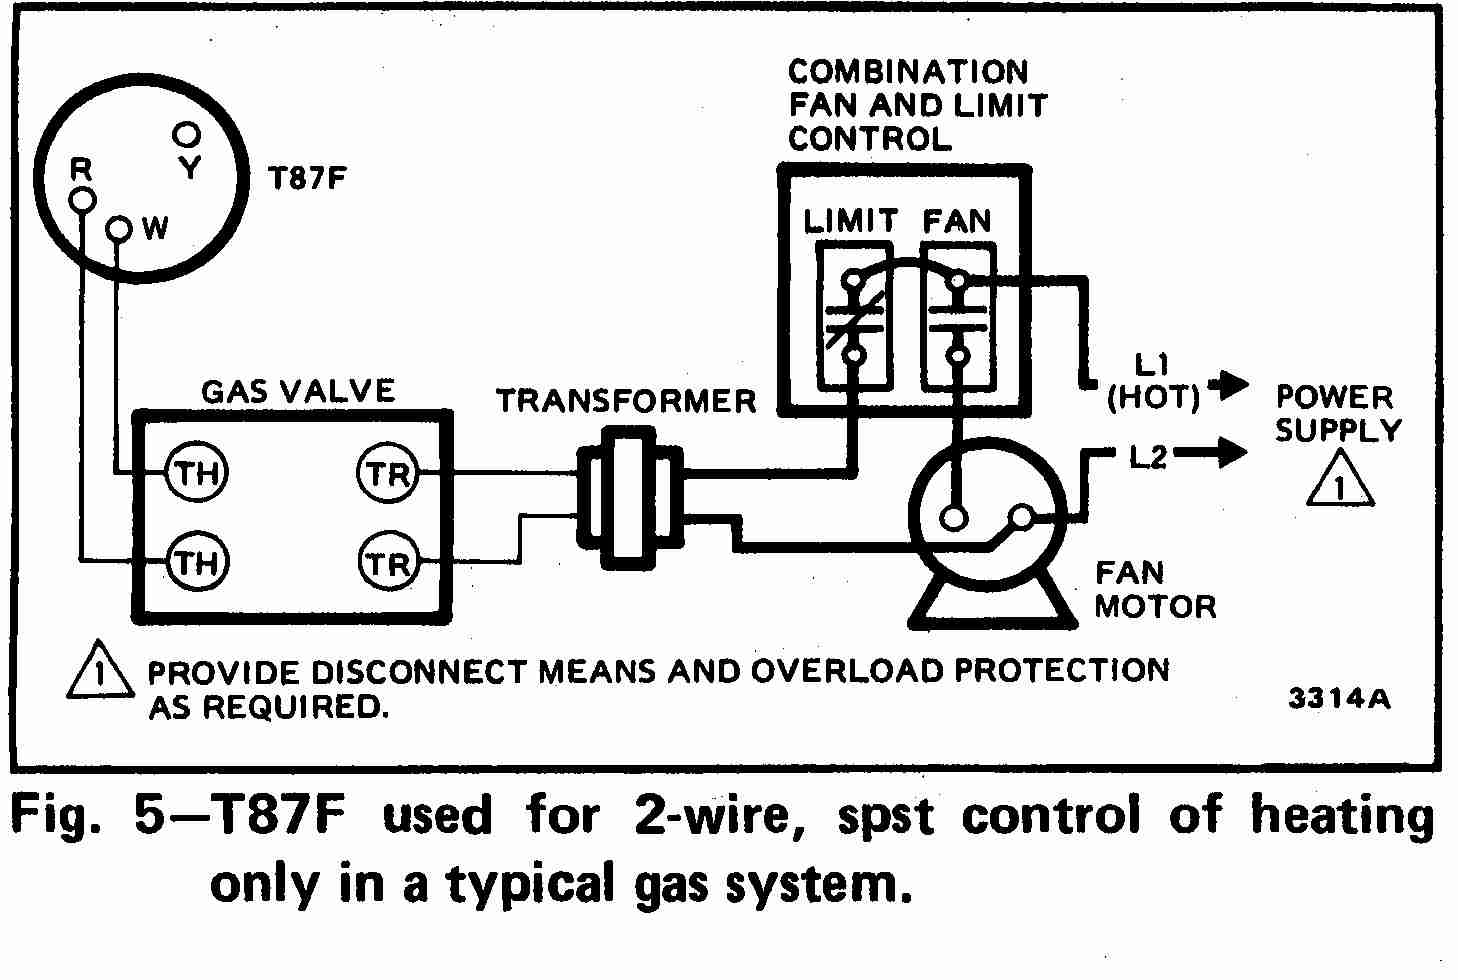 Millivolt Gas Valve Wiring Diagram also Millivolt Valve Wiring Diagram also Honeywell Electric Valves additionally Ja Burner Parts together with Hot 20Water 20Heating 20Explained. on honeywell gas valve diagrams